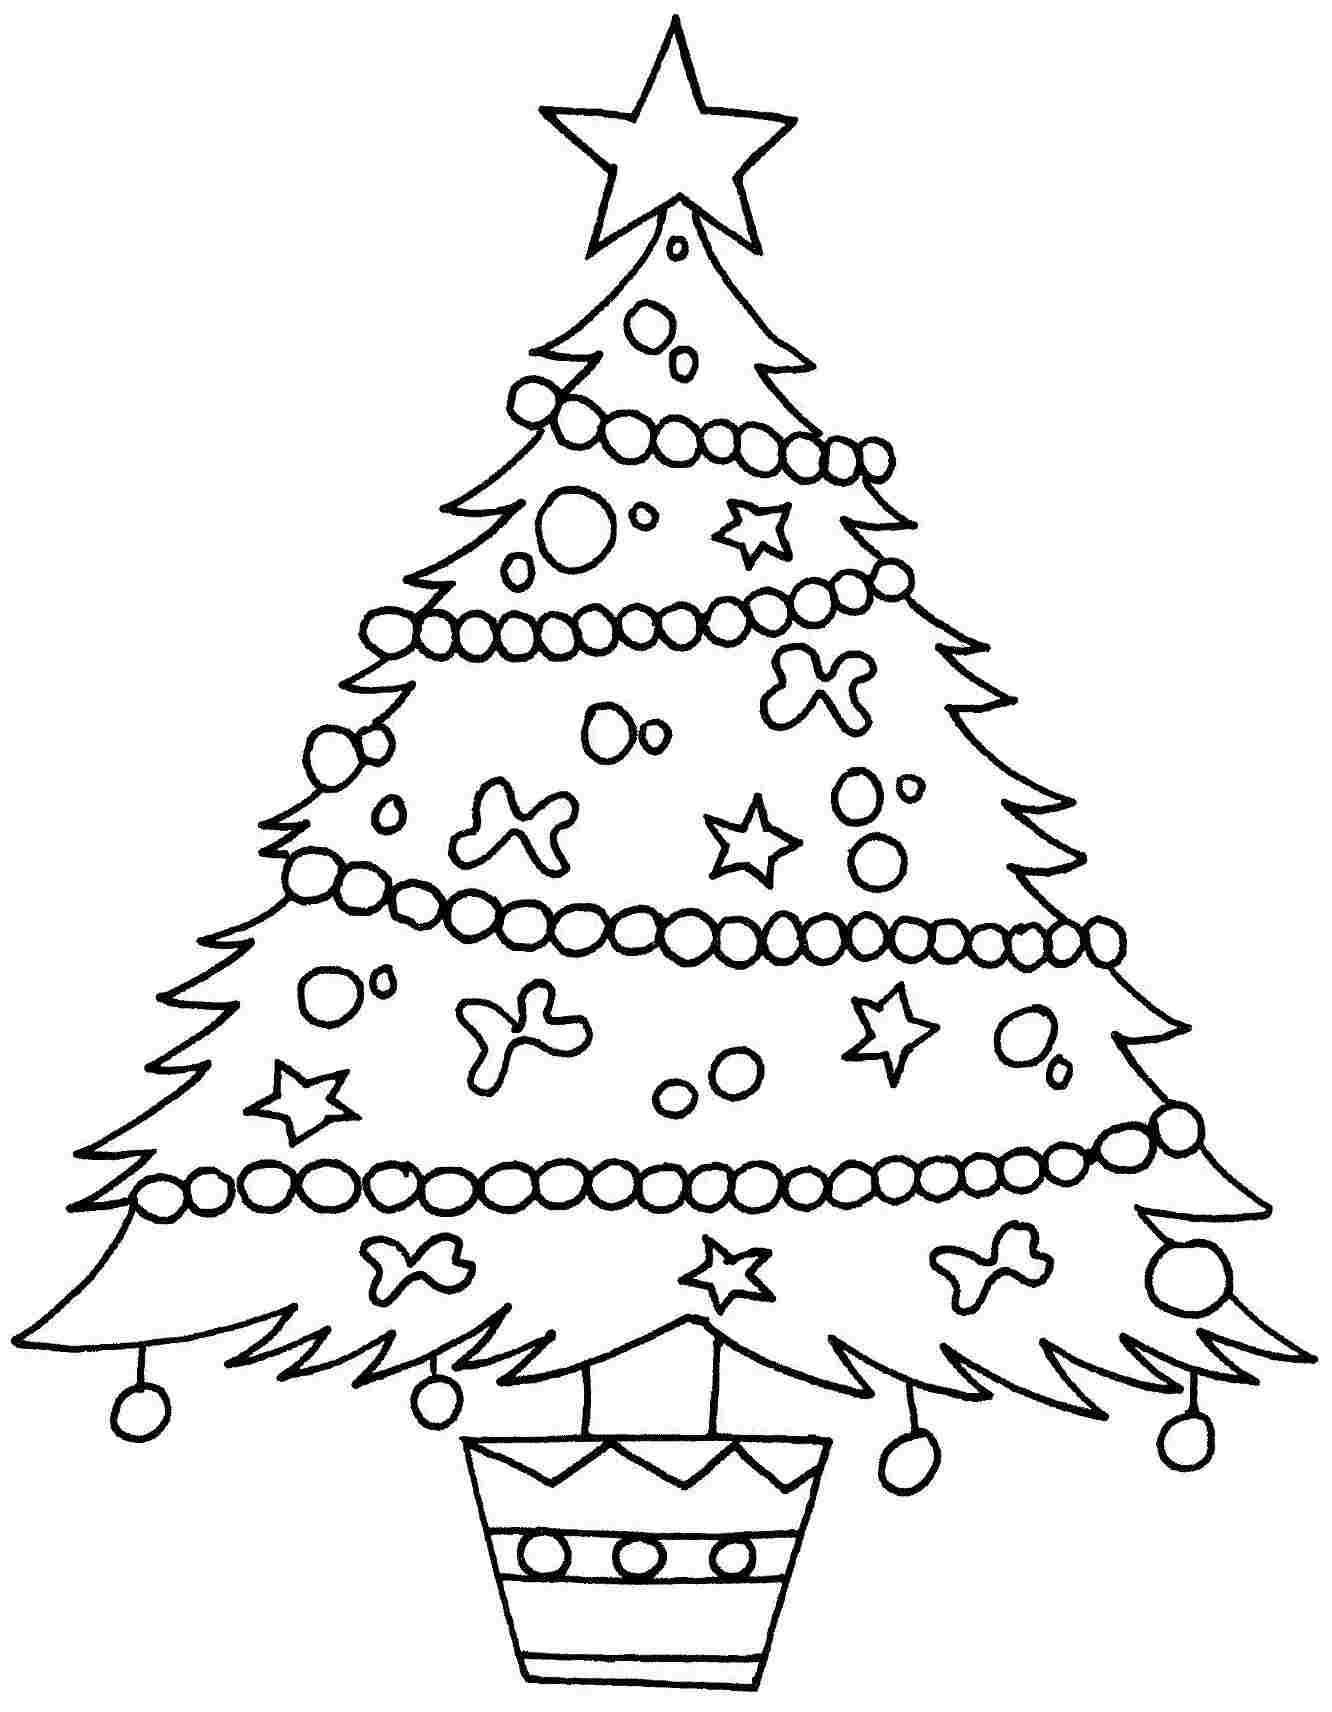 Christmas Tree Coloring Page 04 Trees Pages Rallytv Org In